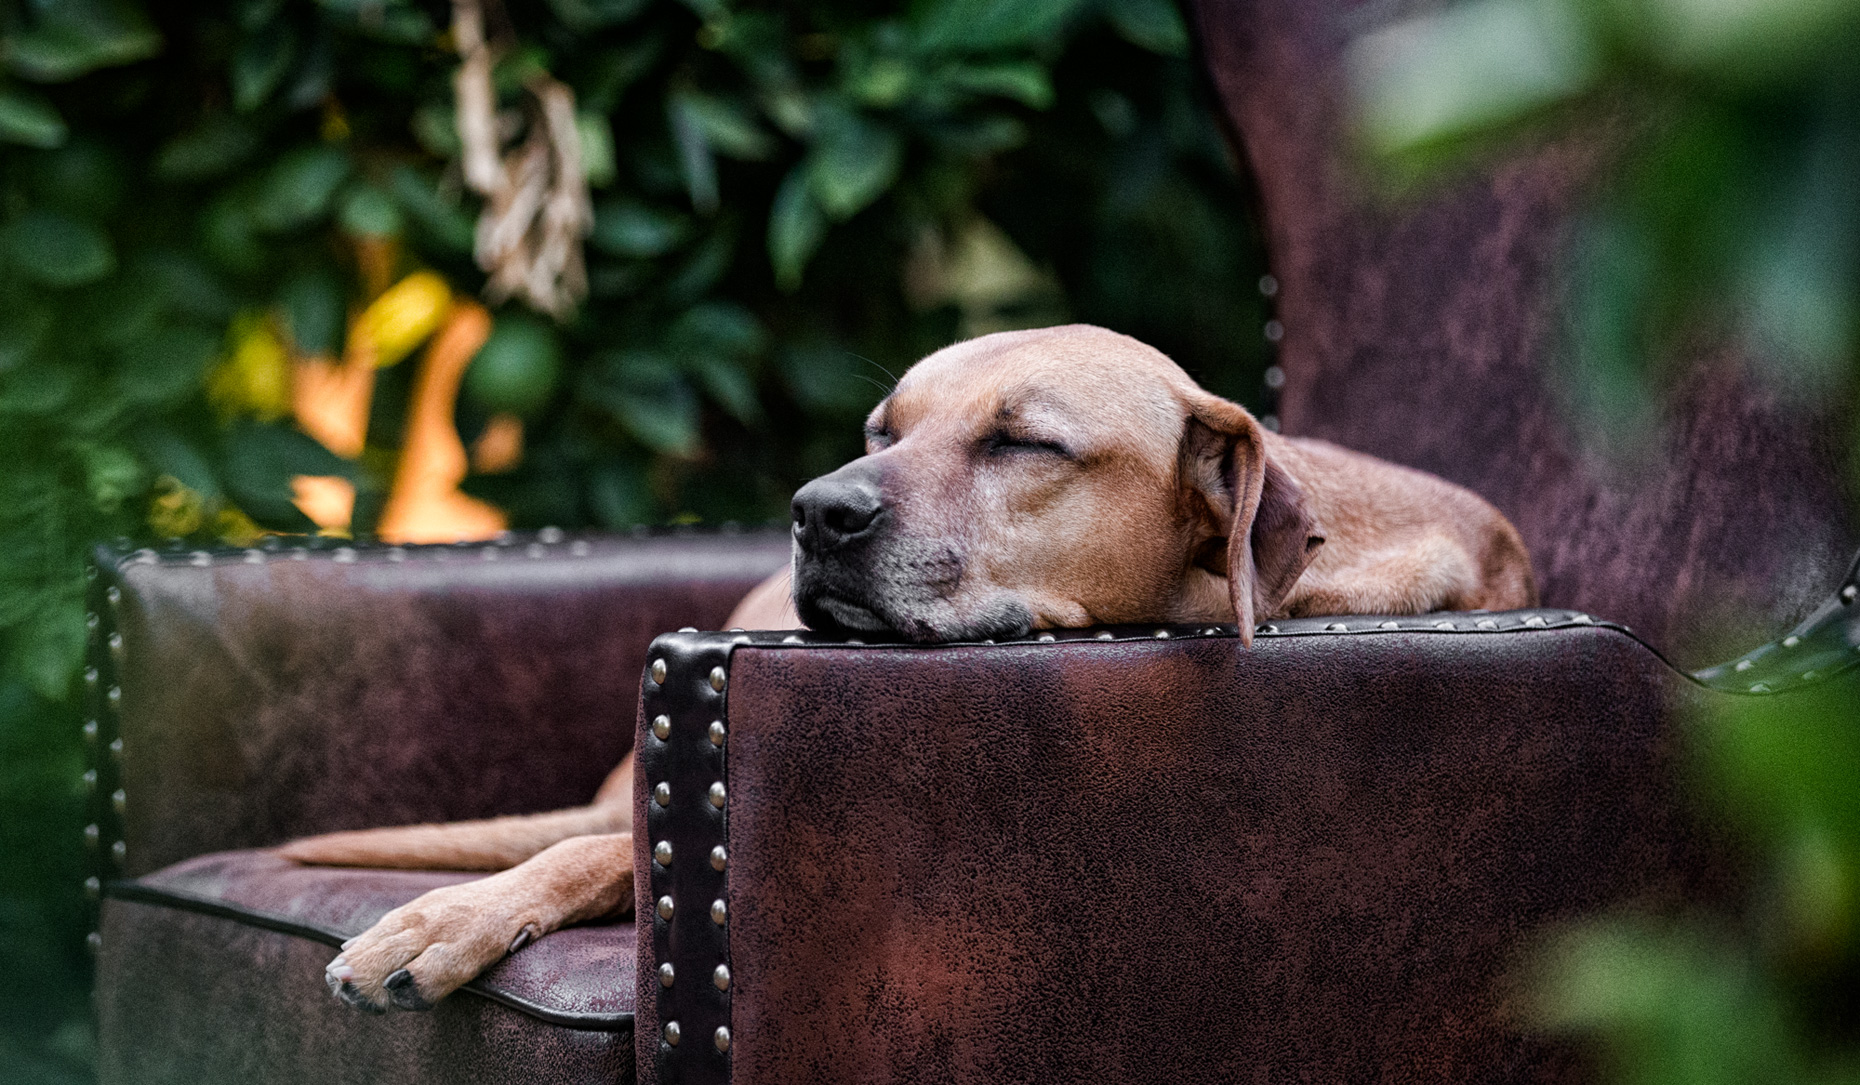 Los Angeles Dog Photography, Michael Brian, pet, cat, Mixed Breed dog asleep on arm of leather chair outside